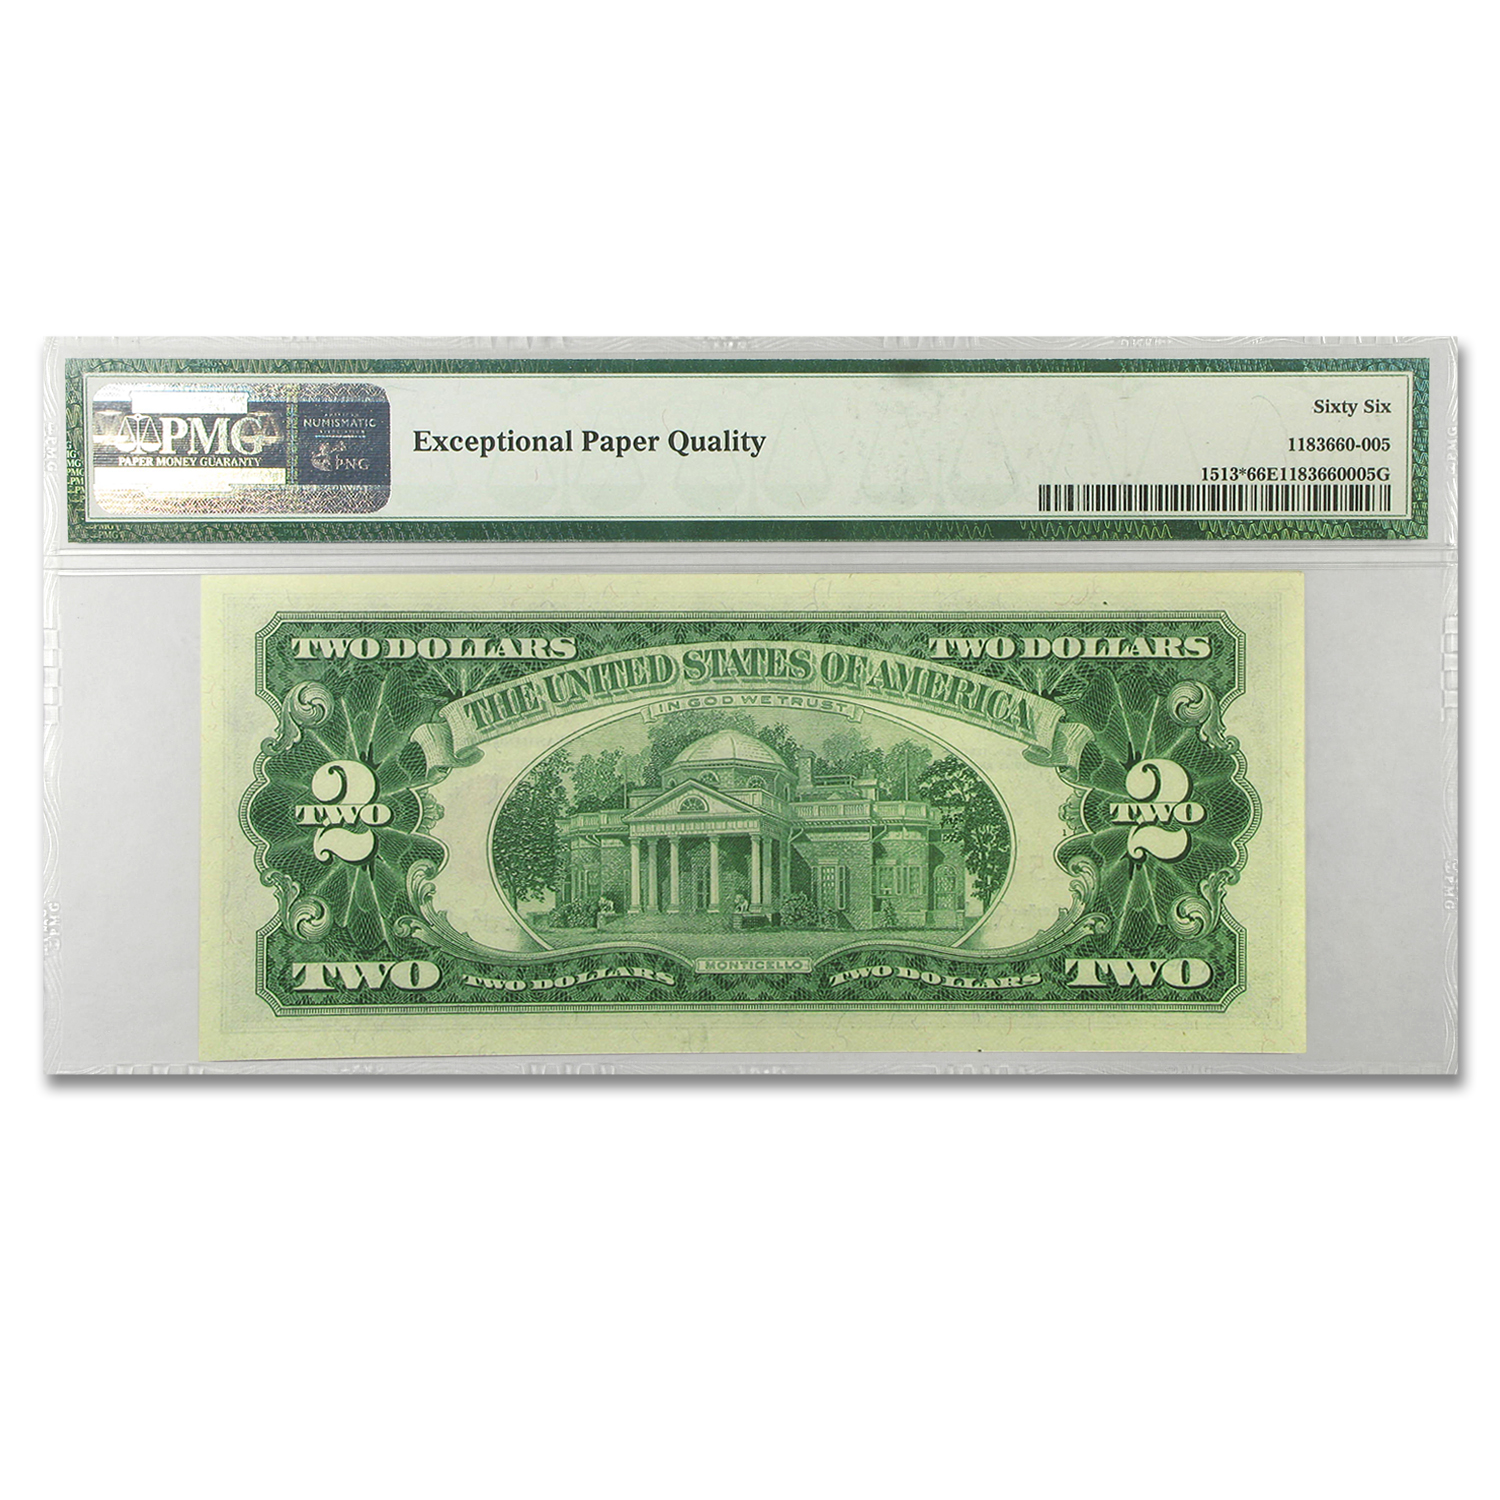 1963 $2.00 U.S. Notes Red Seal CU-66 EPQ PMG (Star Note)